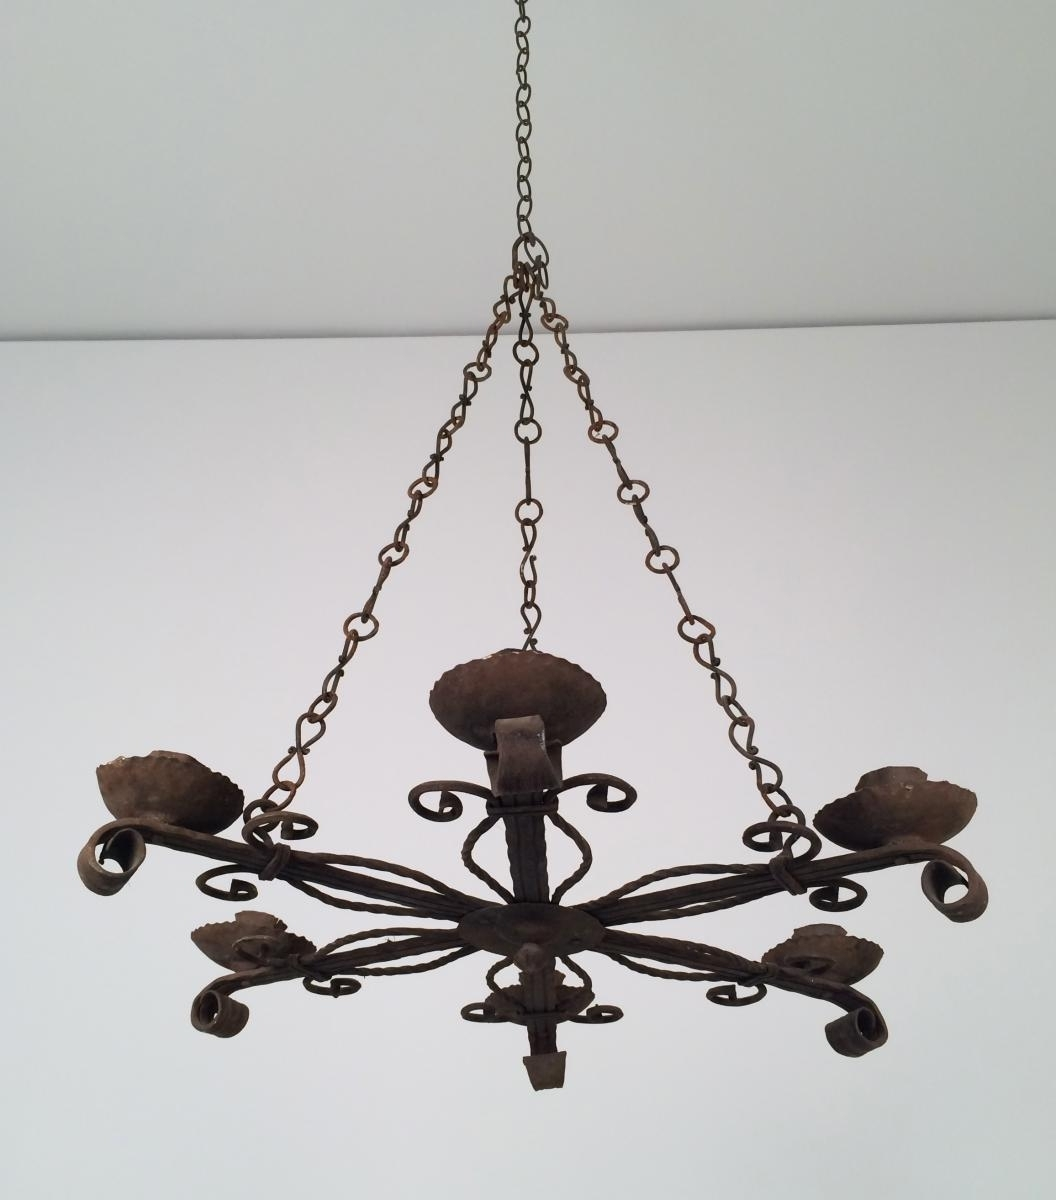 Wrought Iron Chandeliers With Most Up To Date Wrought Iron Chandelier With 5 Candle Holders, 1920s For Sale At Pamono (View 6 of 20)